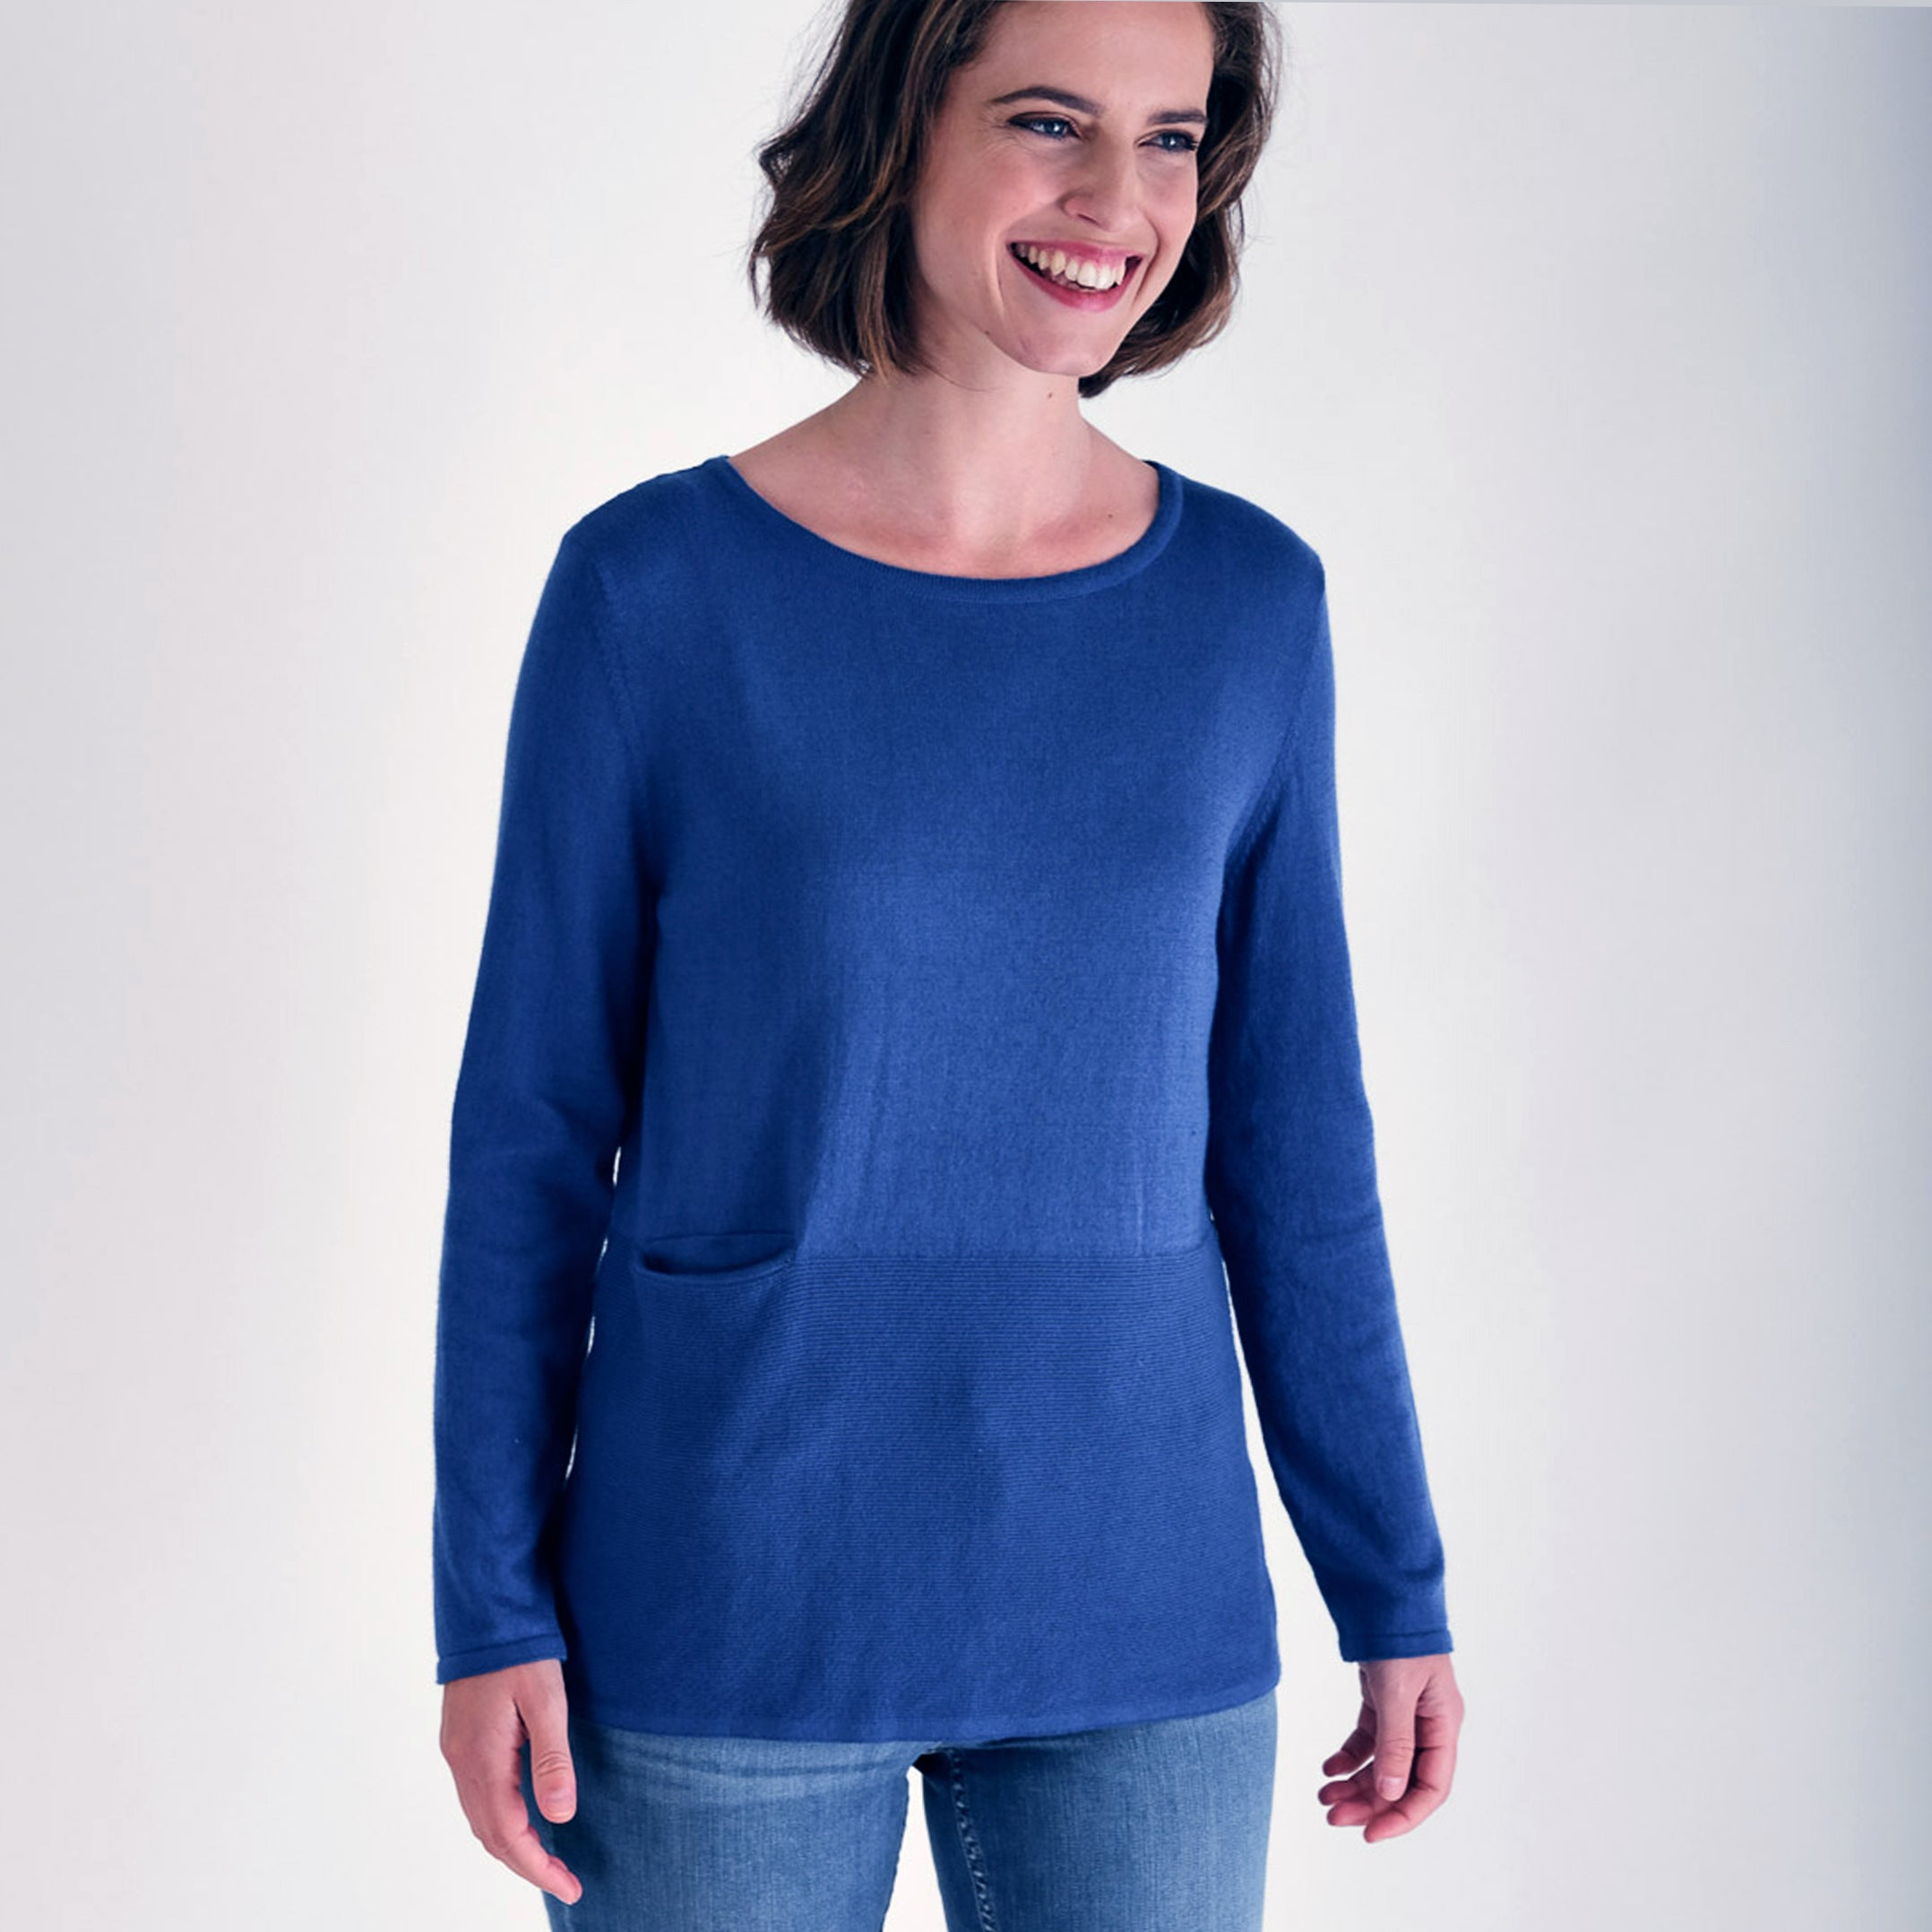 Bibico Nora Organic Cotton Jumper Cornflower